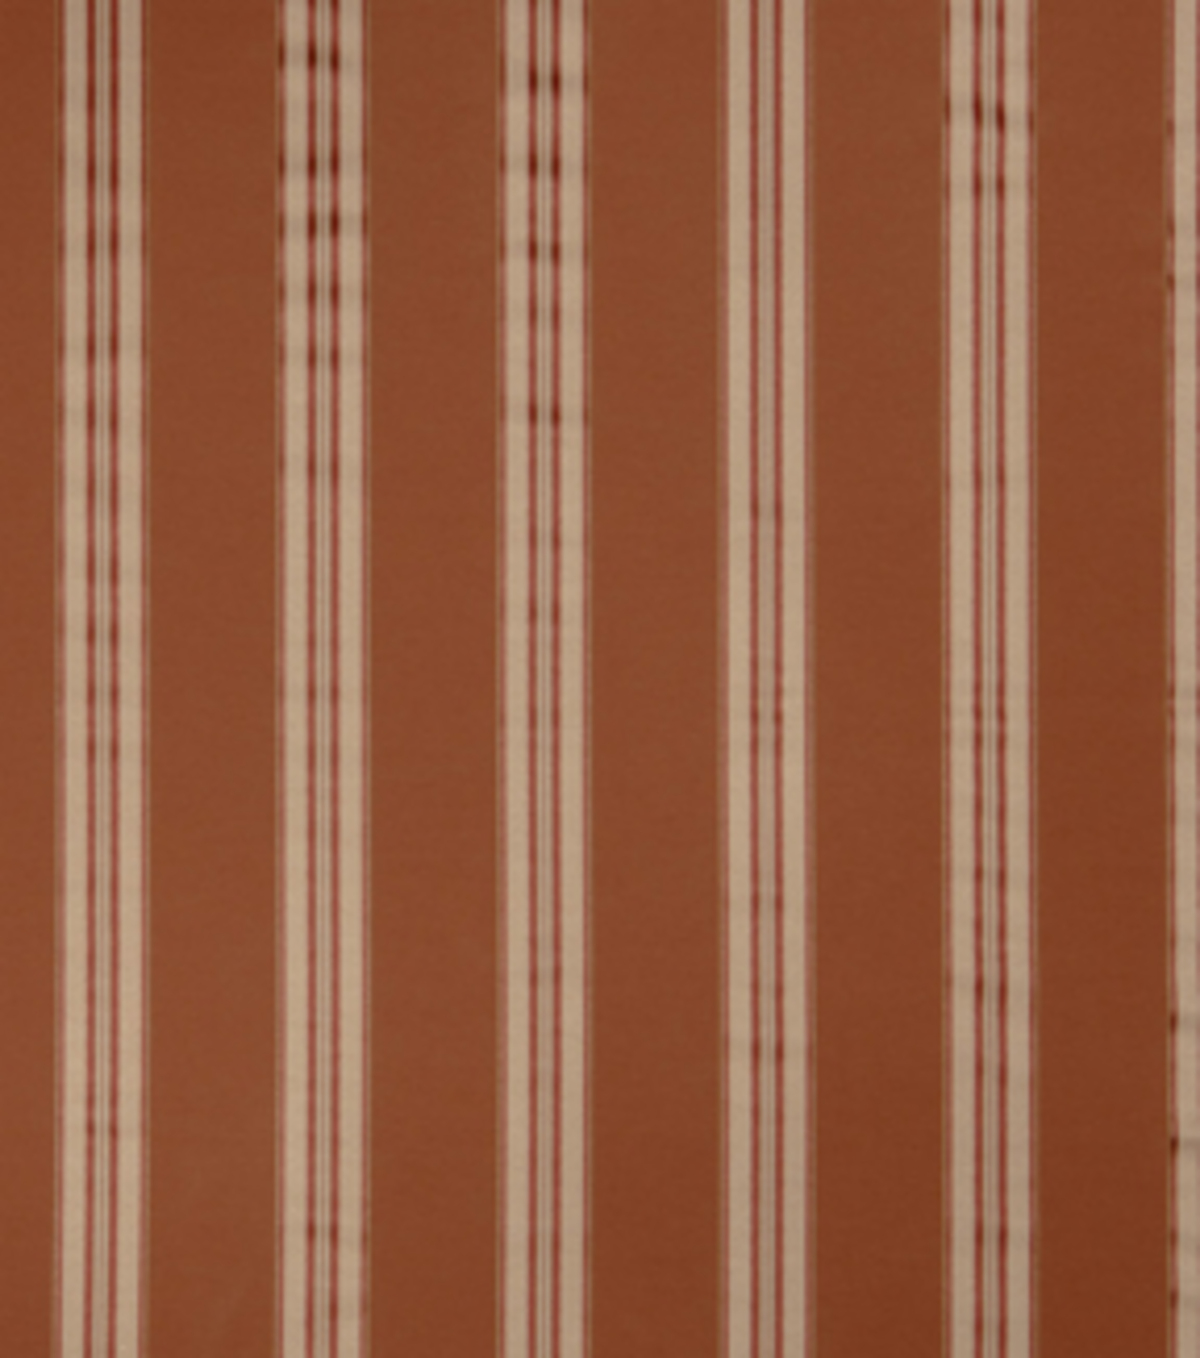 Home Decor 8\u0022x8\u0022 Fabric Swatch-Print Fabric Eaton Square Drumline Coral